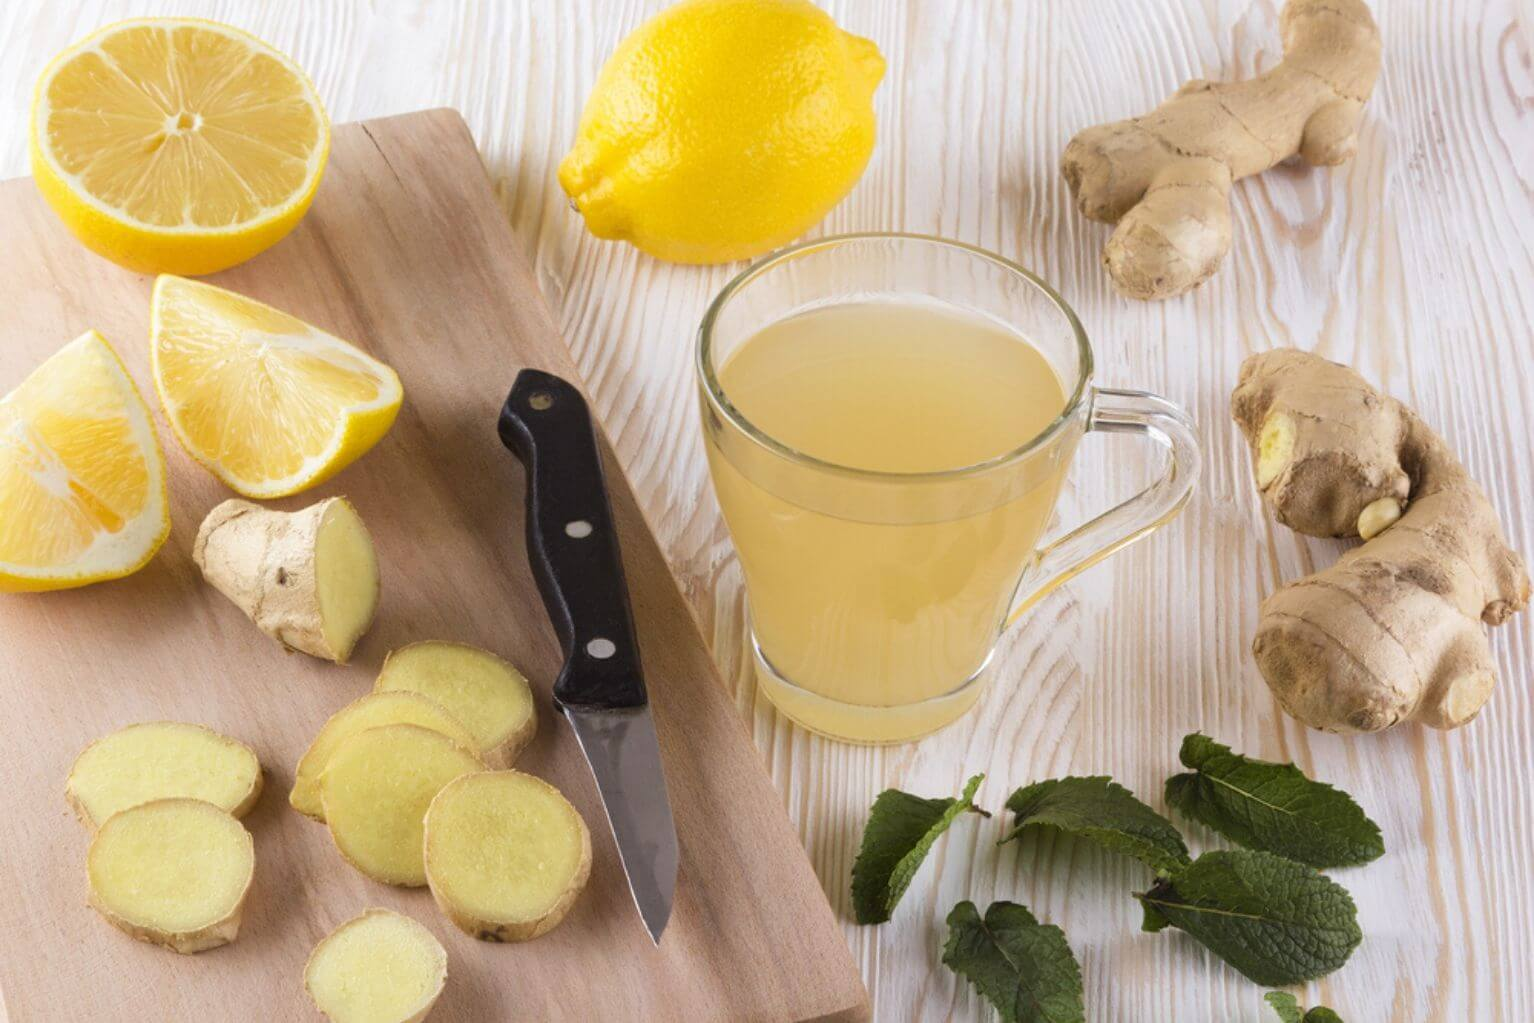 Ginger tea with mint and lemon on a table next to a cutting board and knife